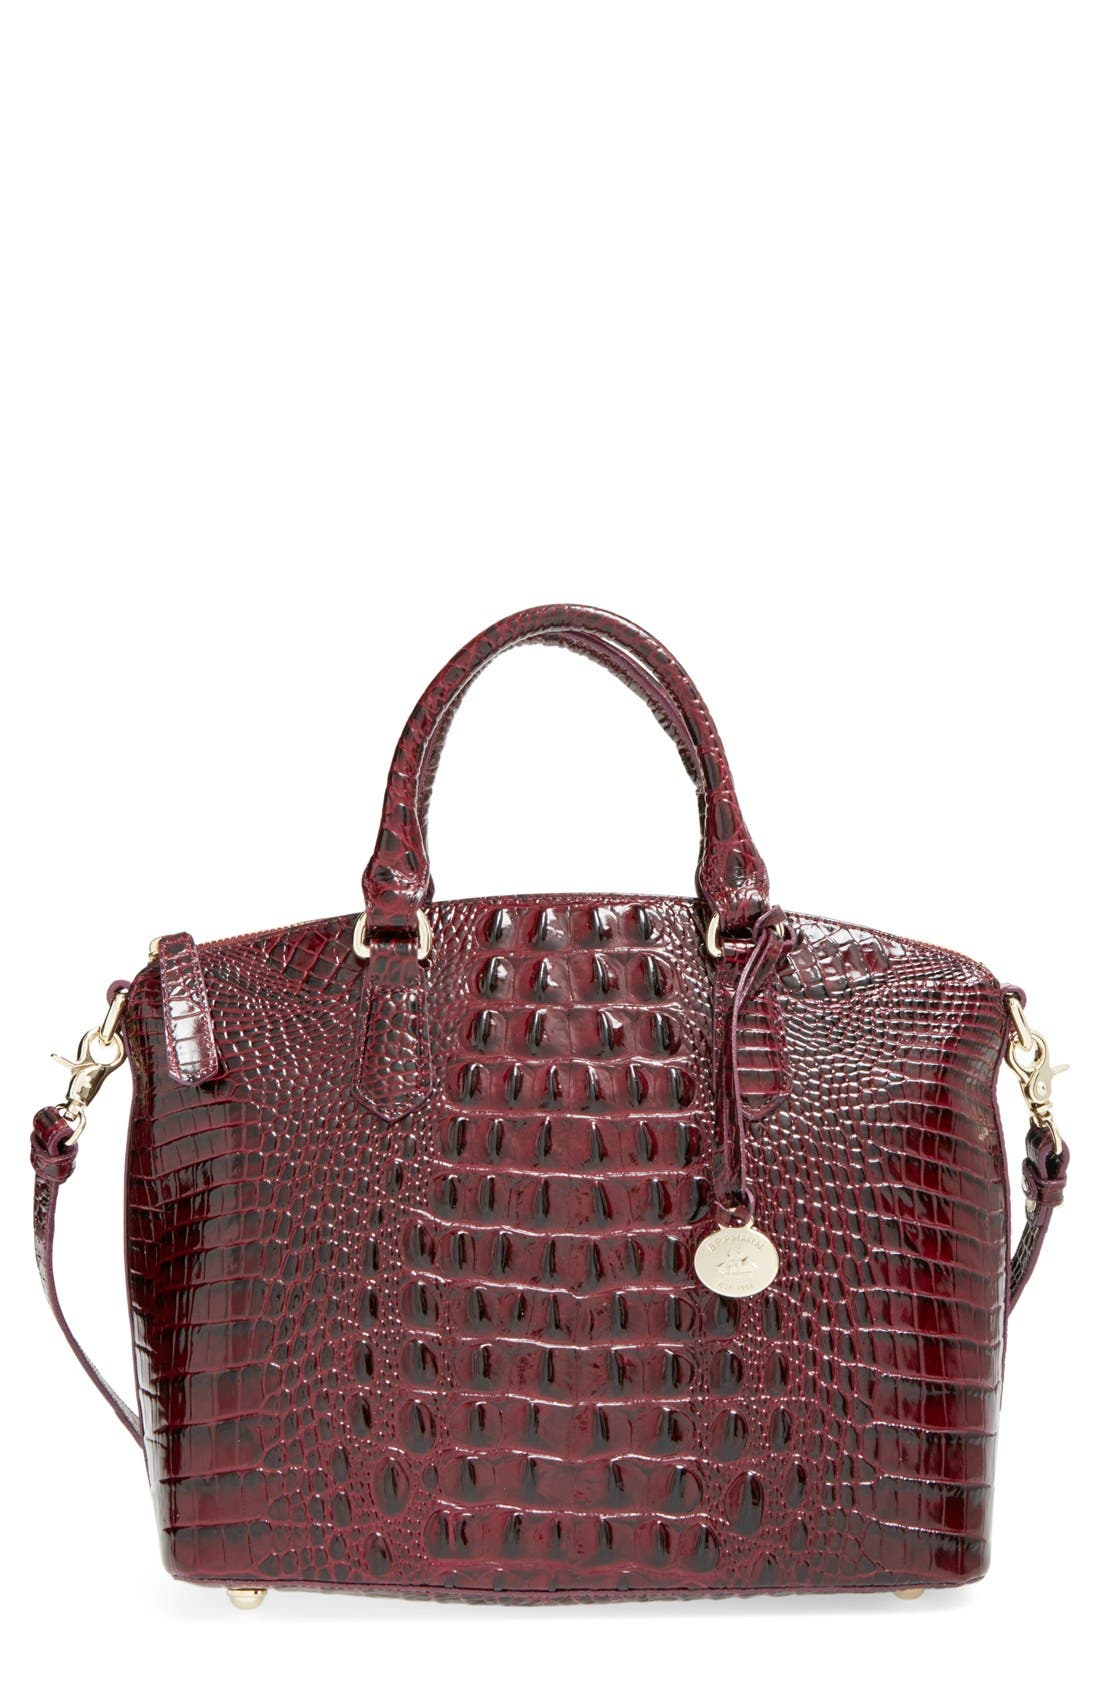 'Medium Duxbury' Croc Embossed Leather Satchel,                             Main thumbnail 19, color,